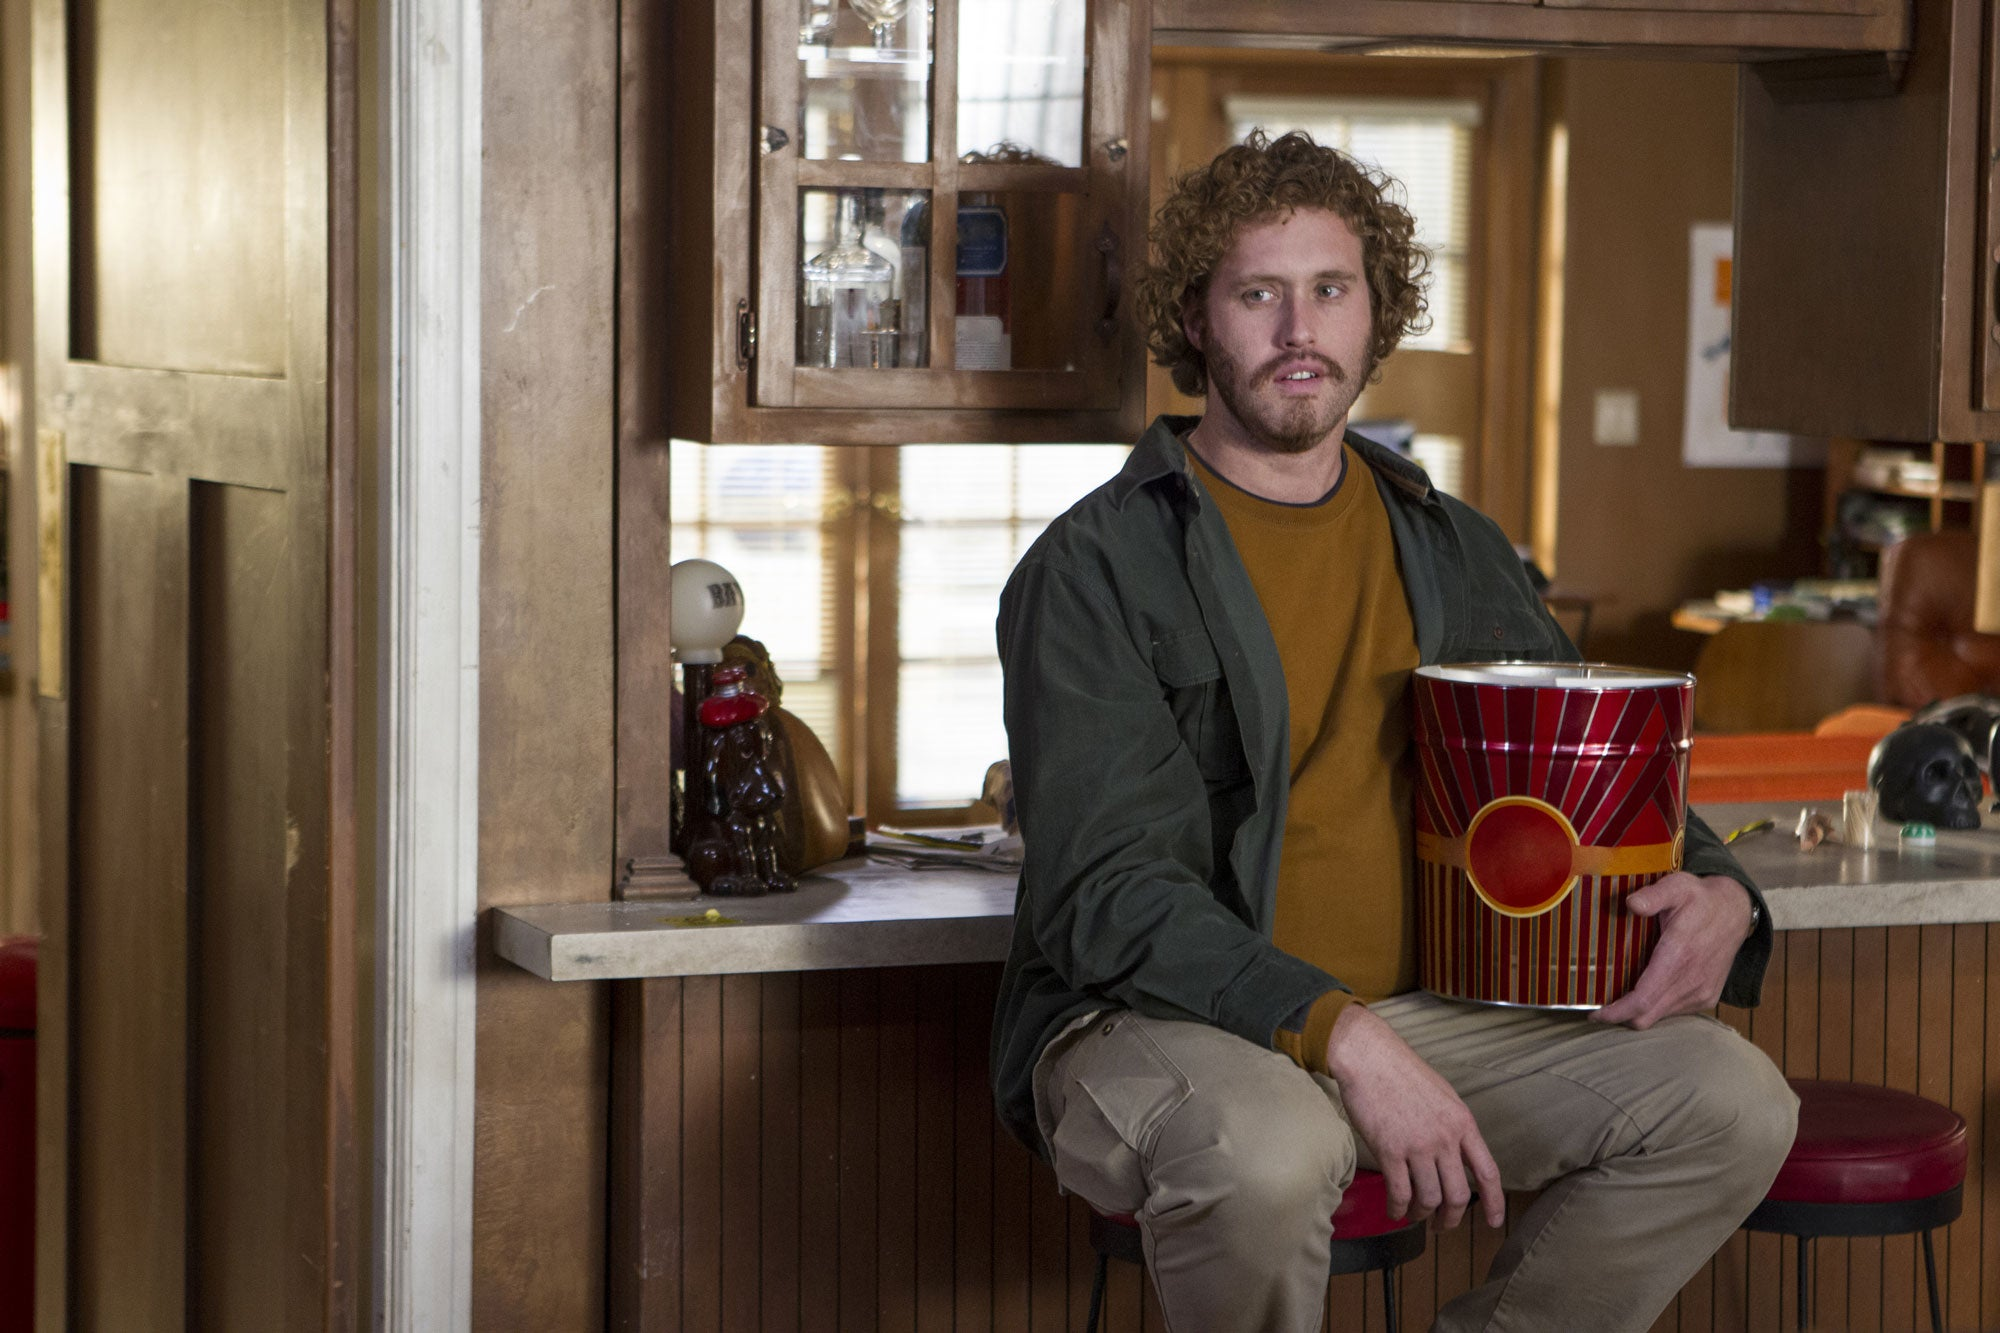 Silicon Valley's TJ Miller on Satire, Weed, and Why Judd Apatow is So Over